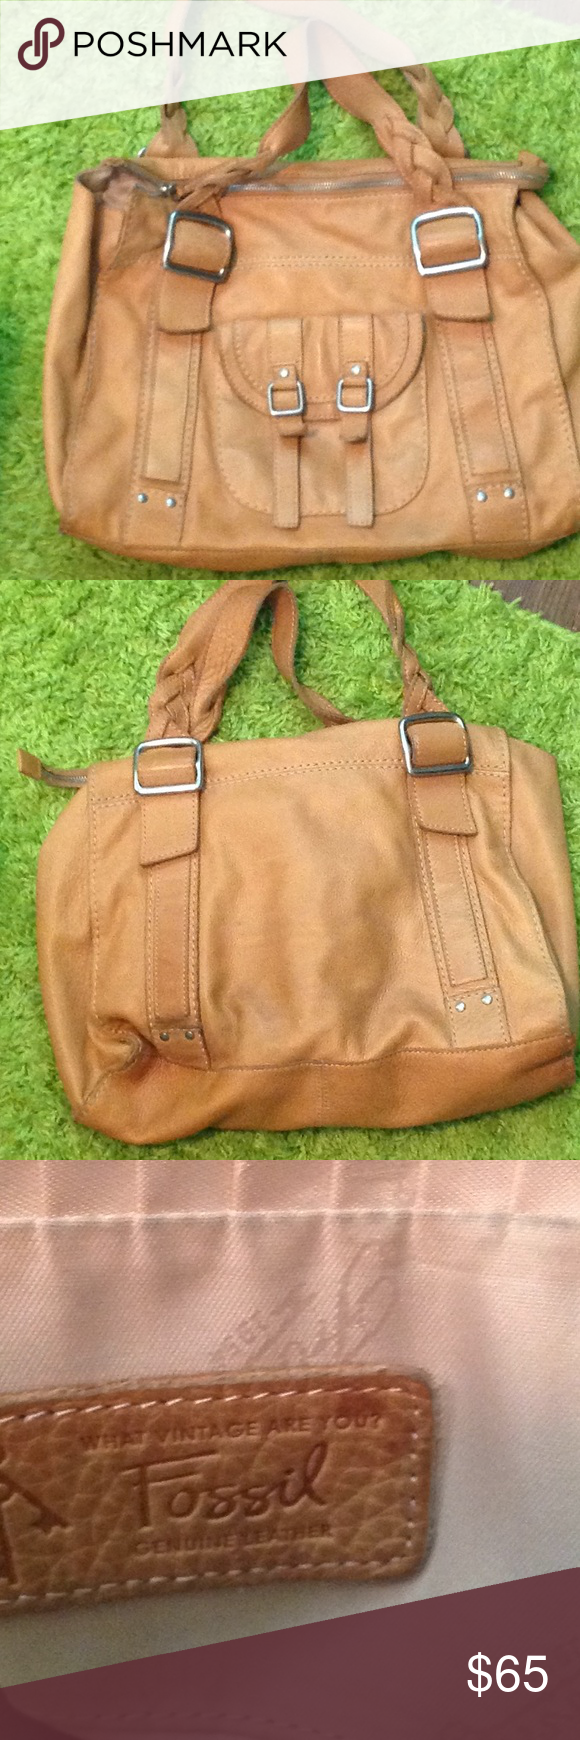 5c27208c58cd28 Fabulous Vintage Fossil Bag Love this bag. I just have too many. It's a big  soft leather bag with lots of pockets. It will even hold a laptop or tablet  and ...